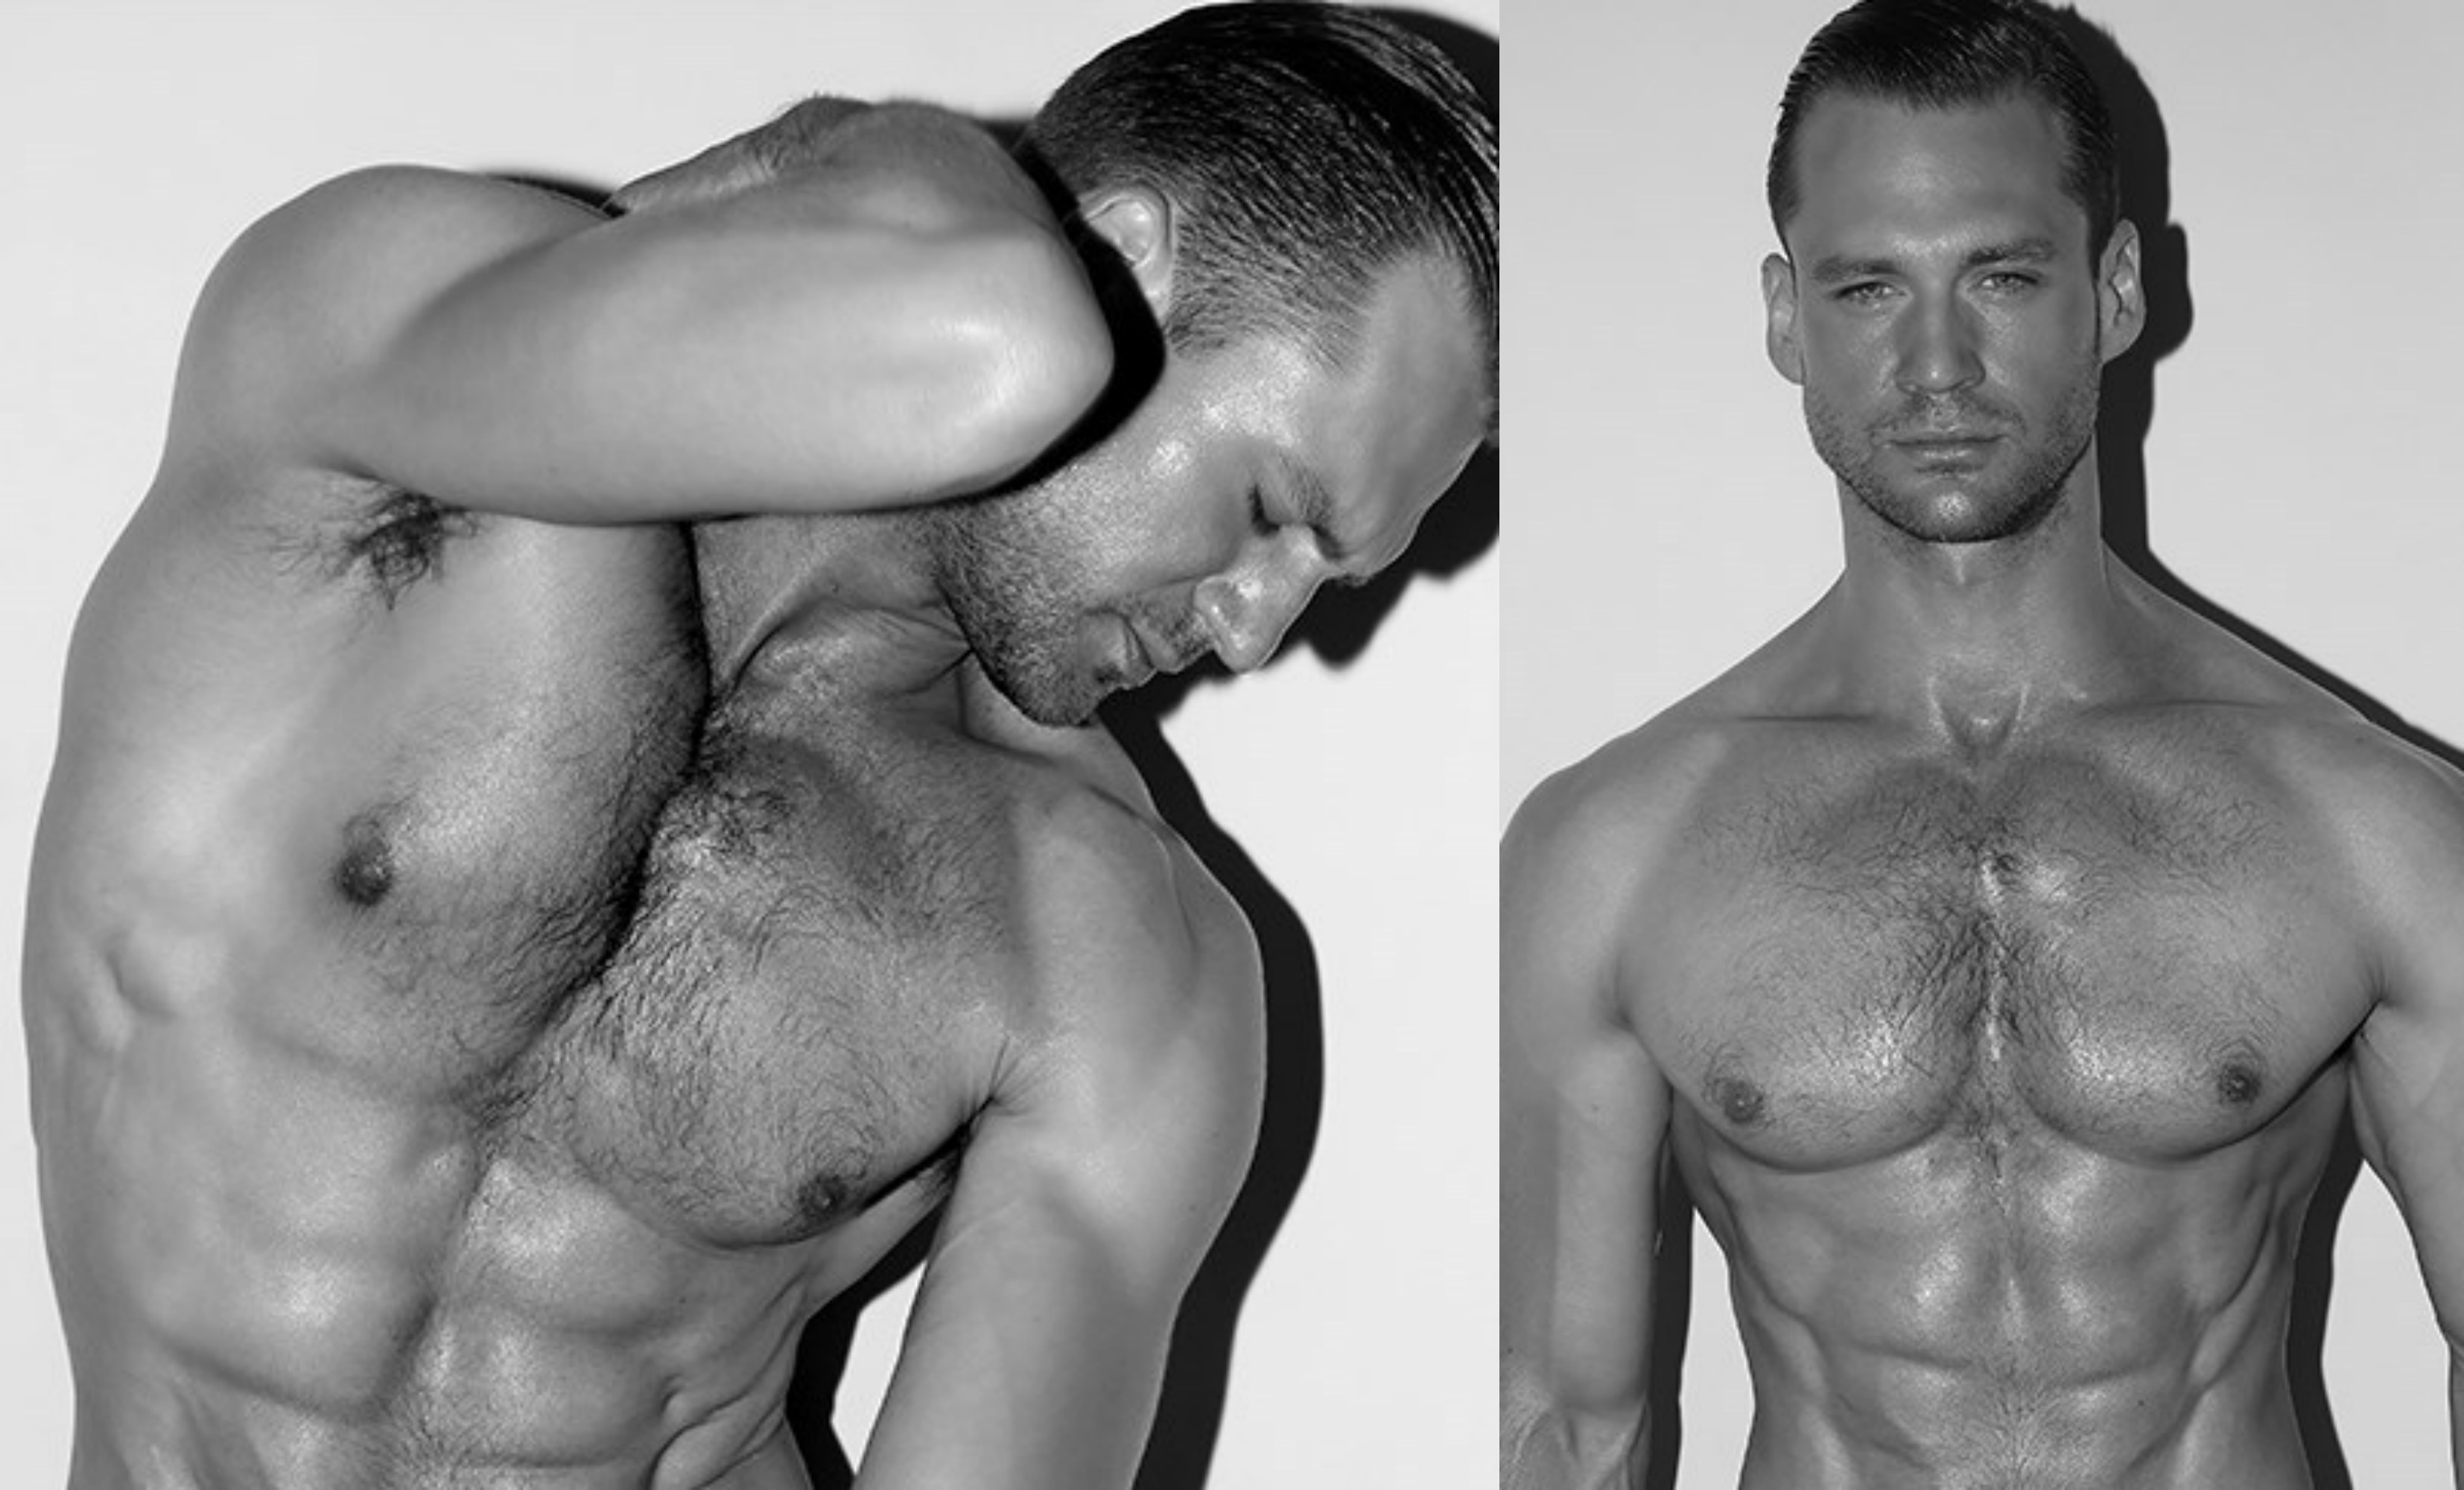 MAN CANDY: Aussie Model Nic Cunningham Stuns in Seductive Shoot [NSFW]